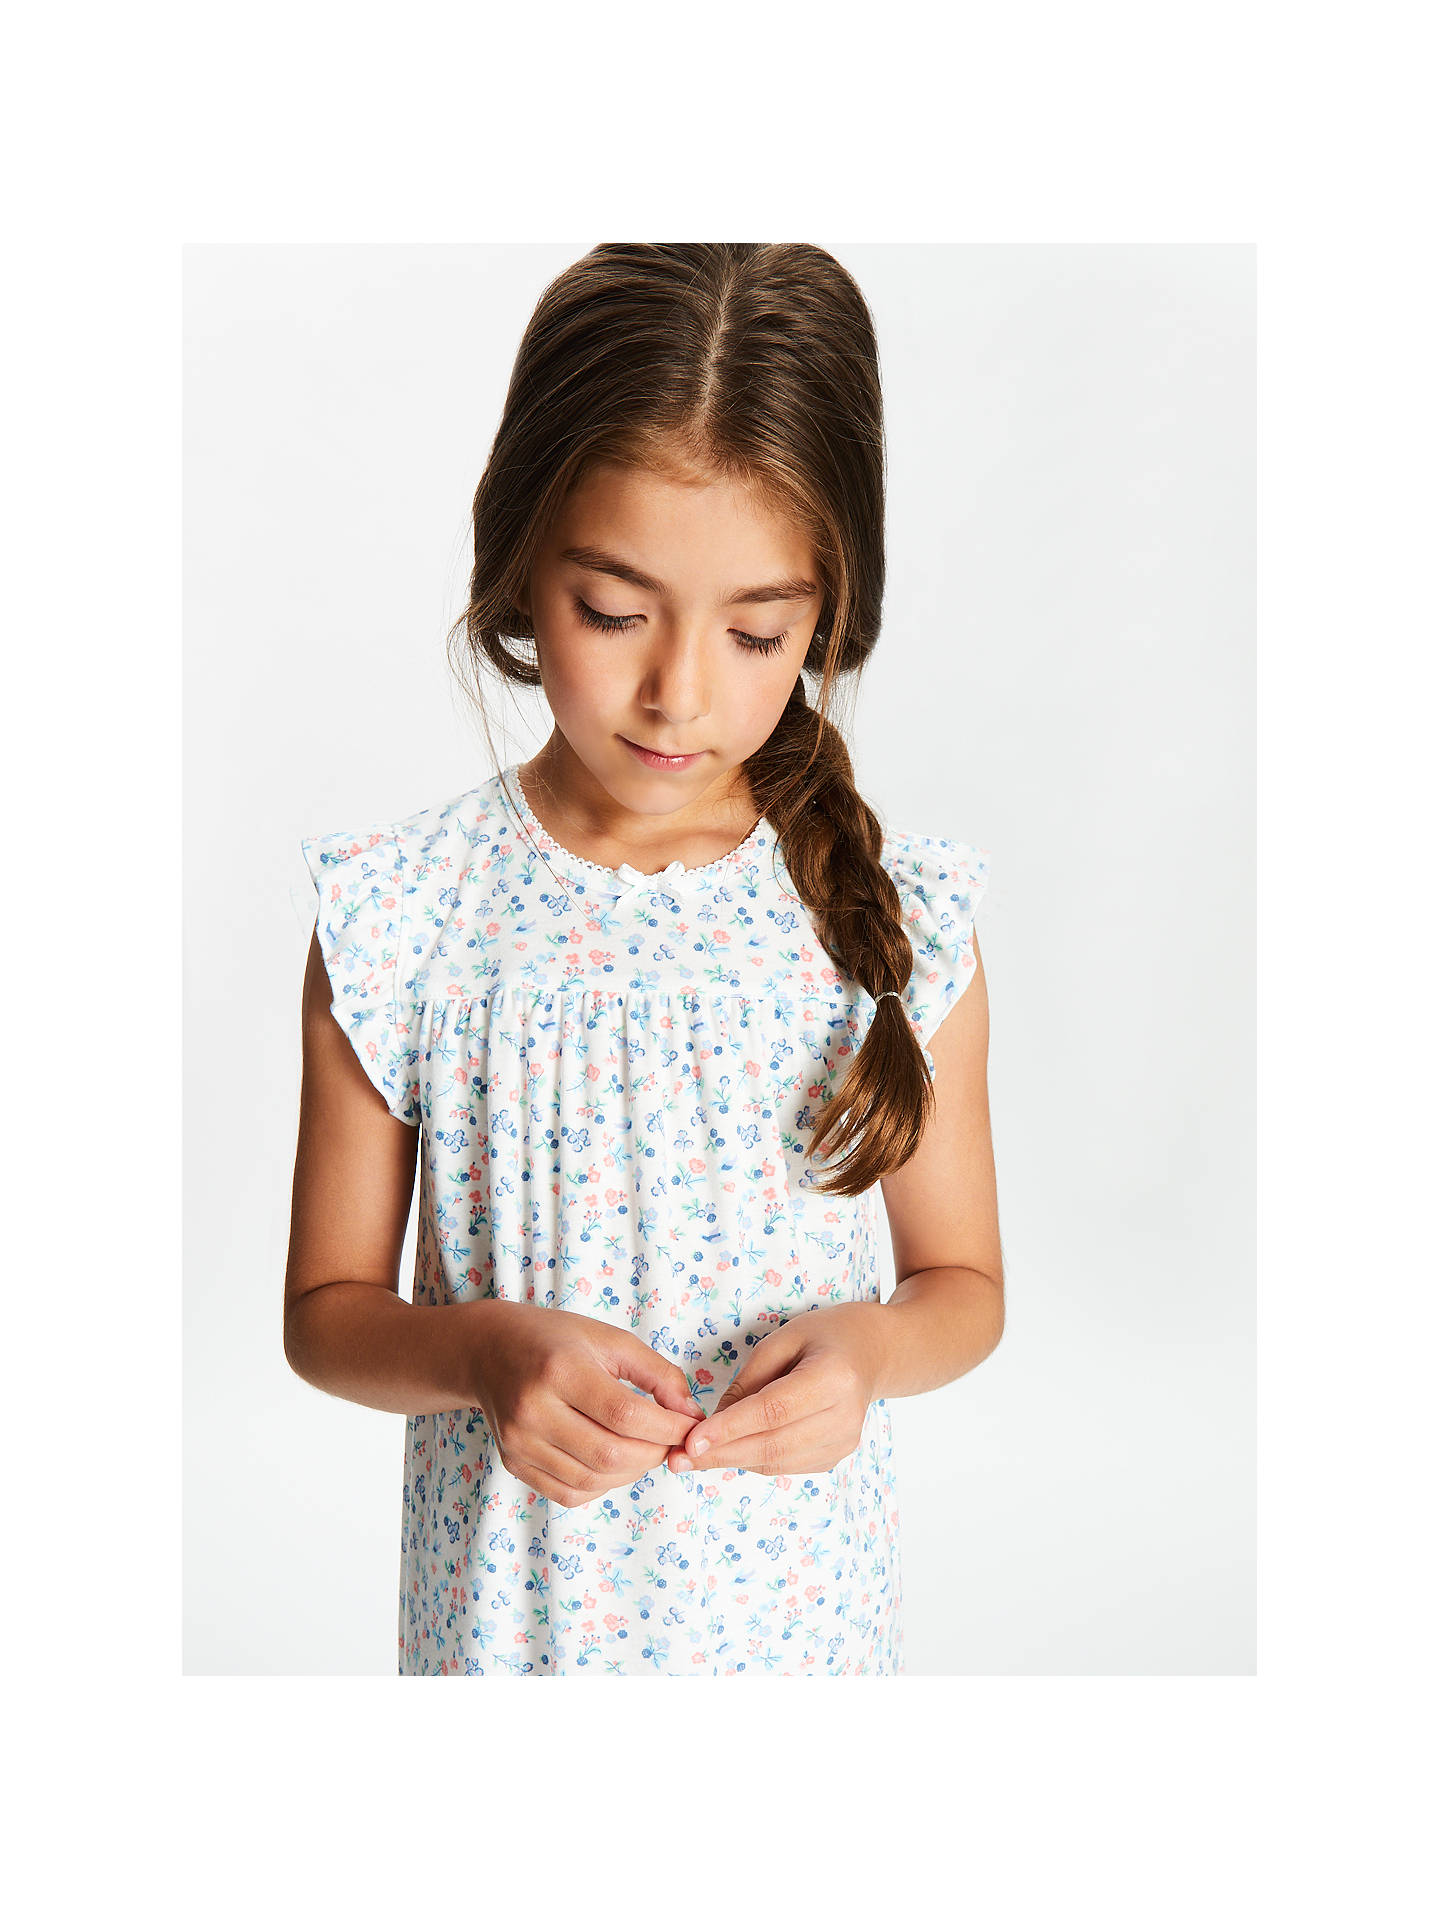 a297d2c1a5 ... Buy John Lewis & Partners Girls' Floral Berry Short Sleeve Nightdress,  Cream, 2